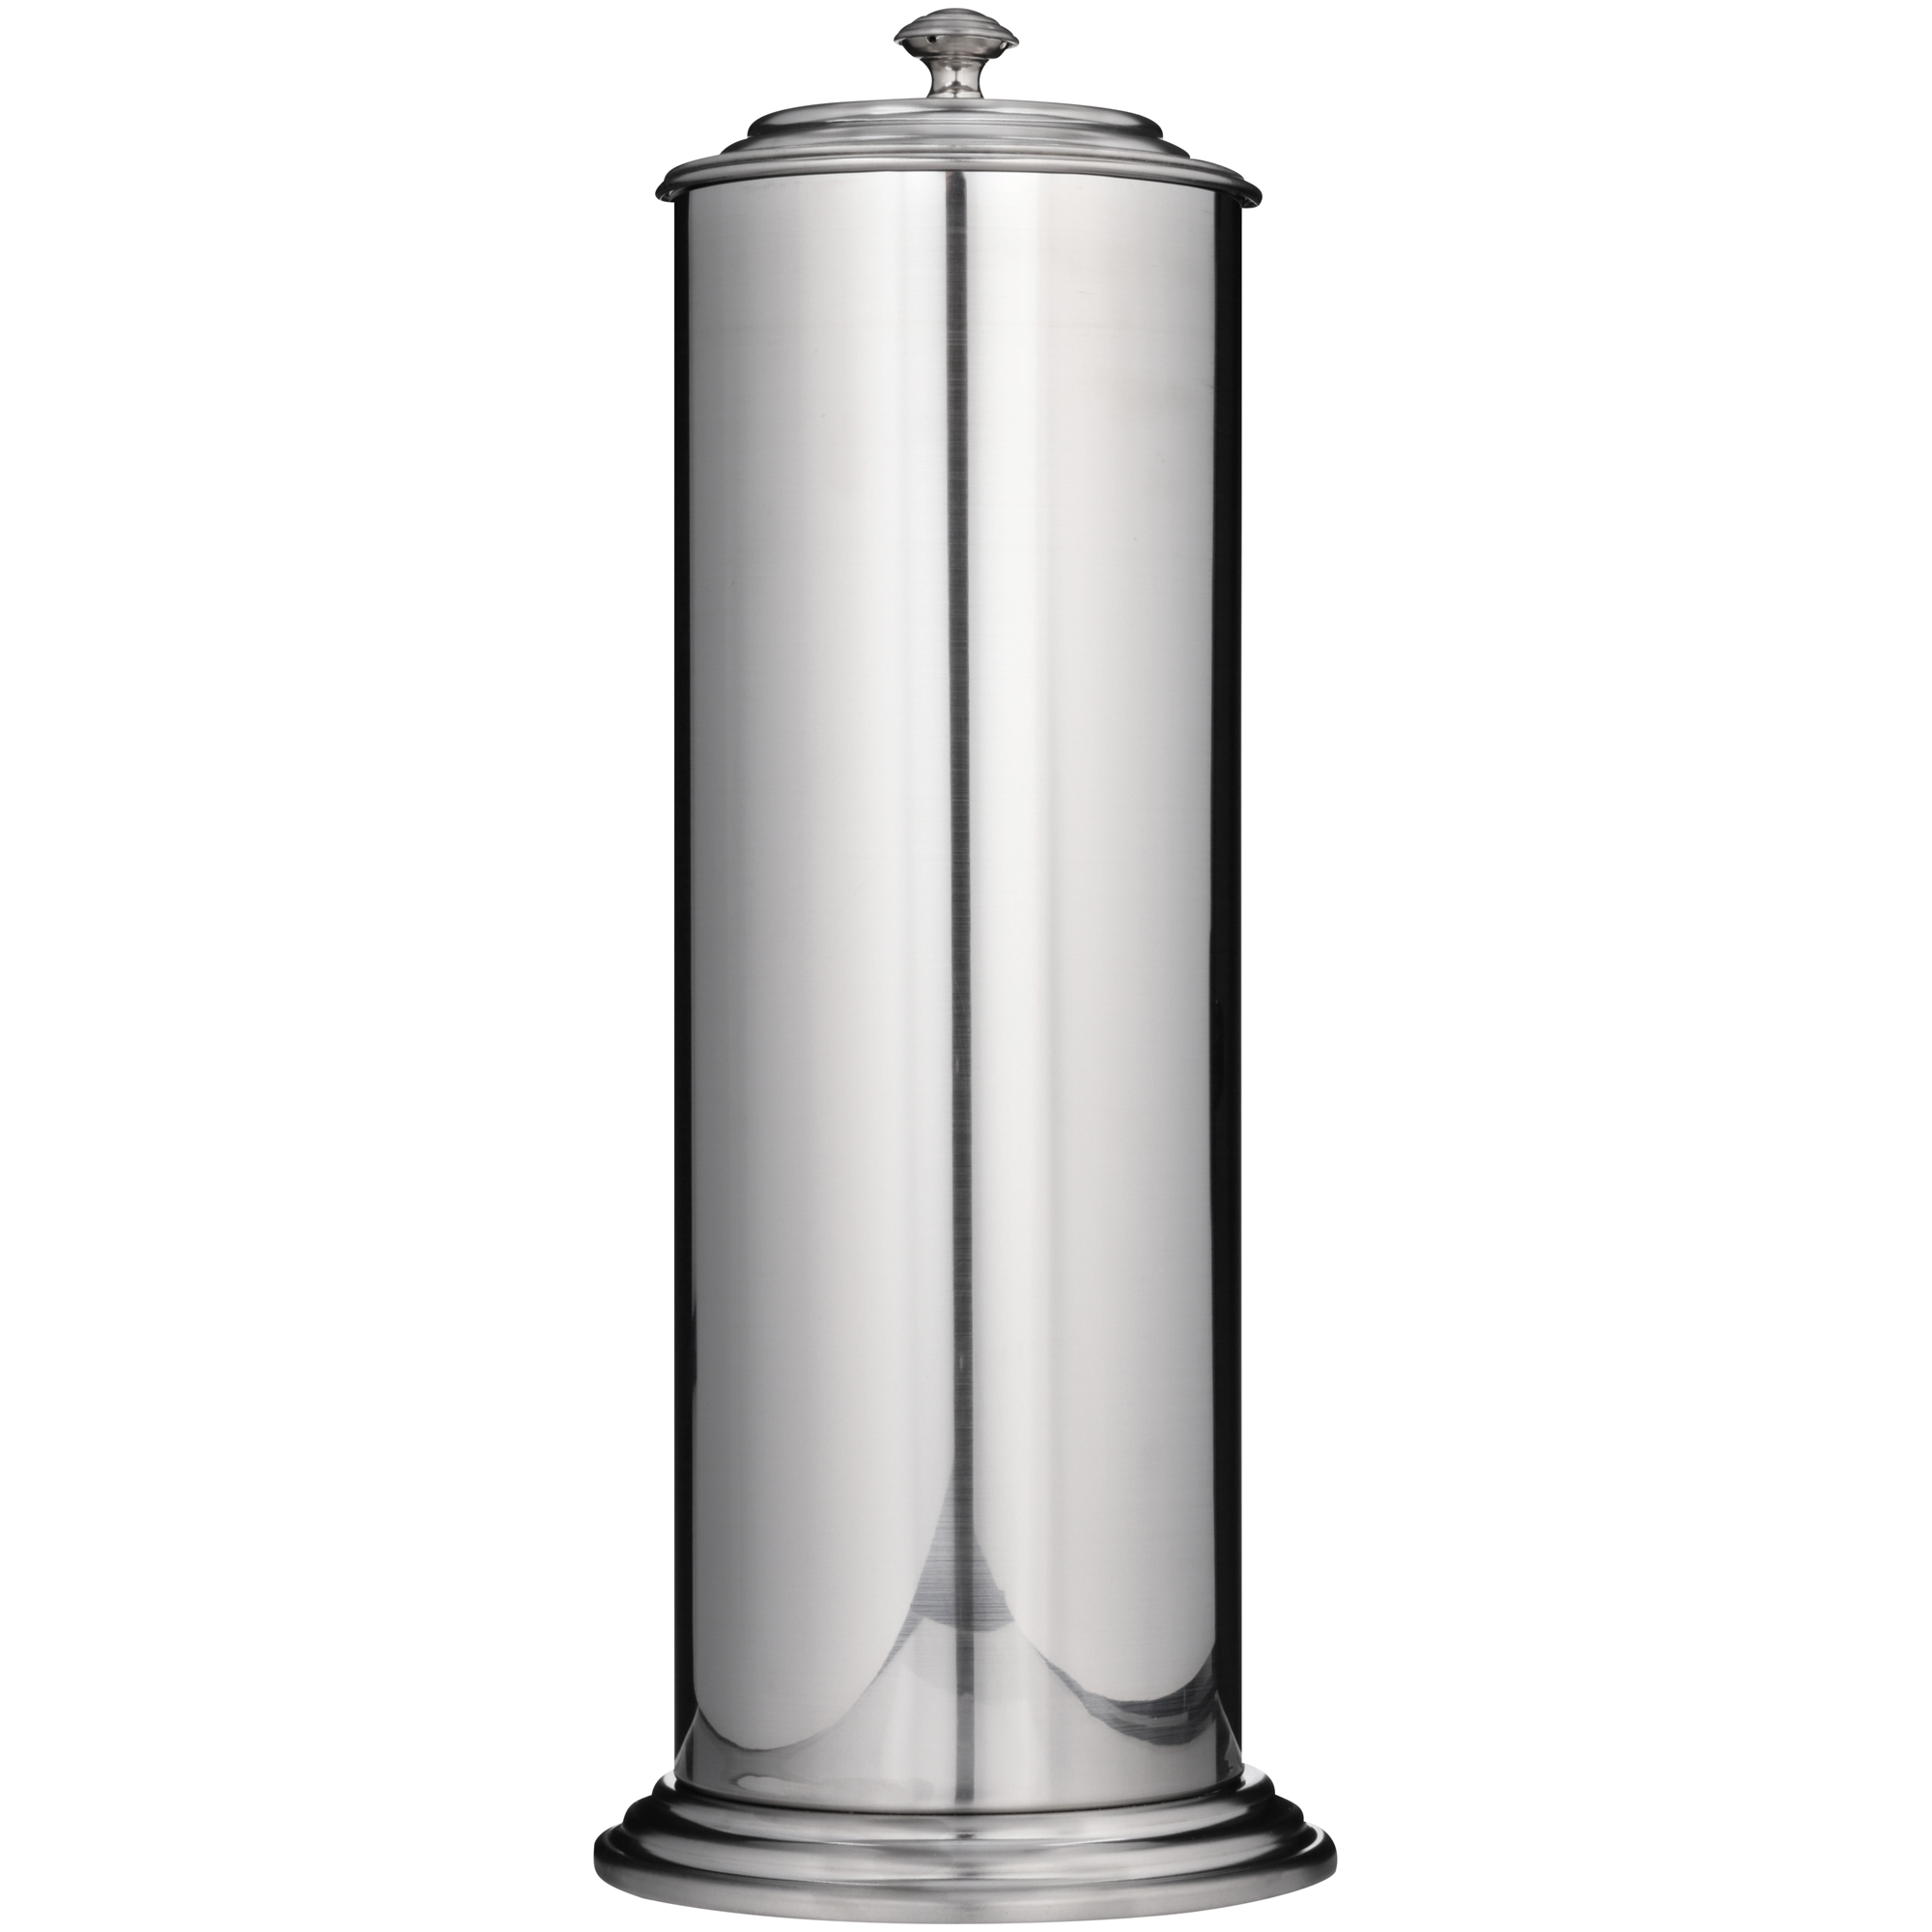 Exquisite® Ashton Collection Brushed Nickel Extra Toilet Paper Canister